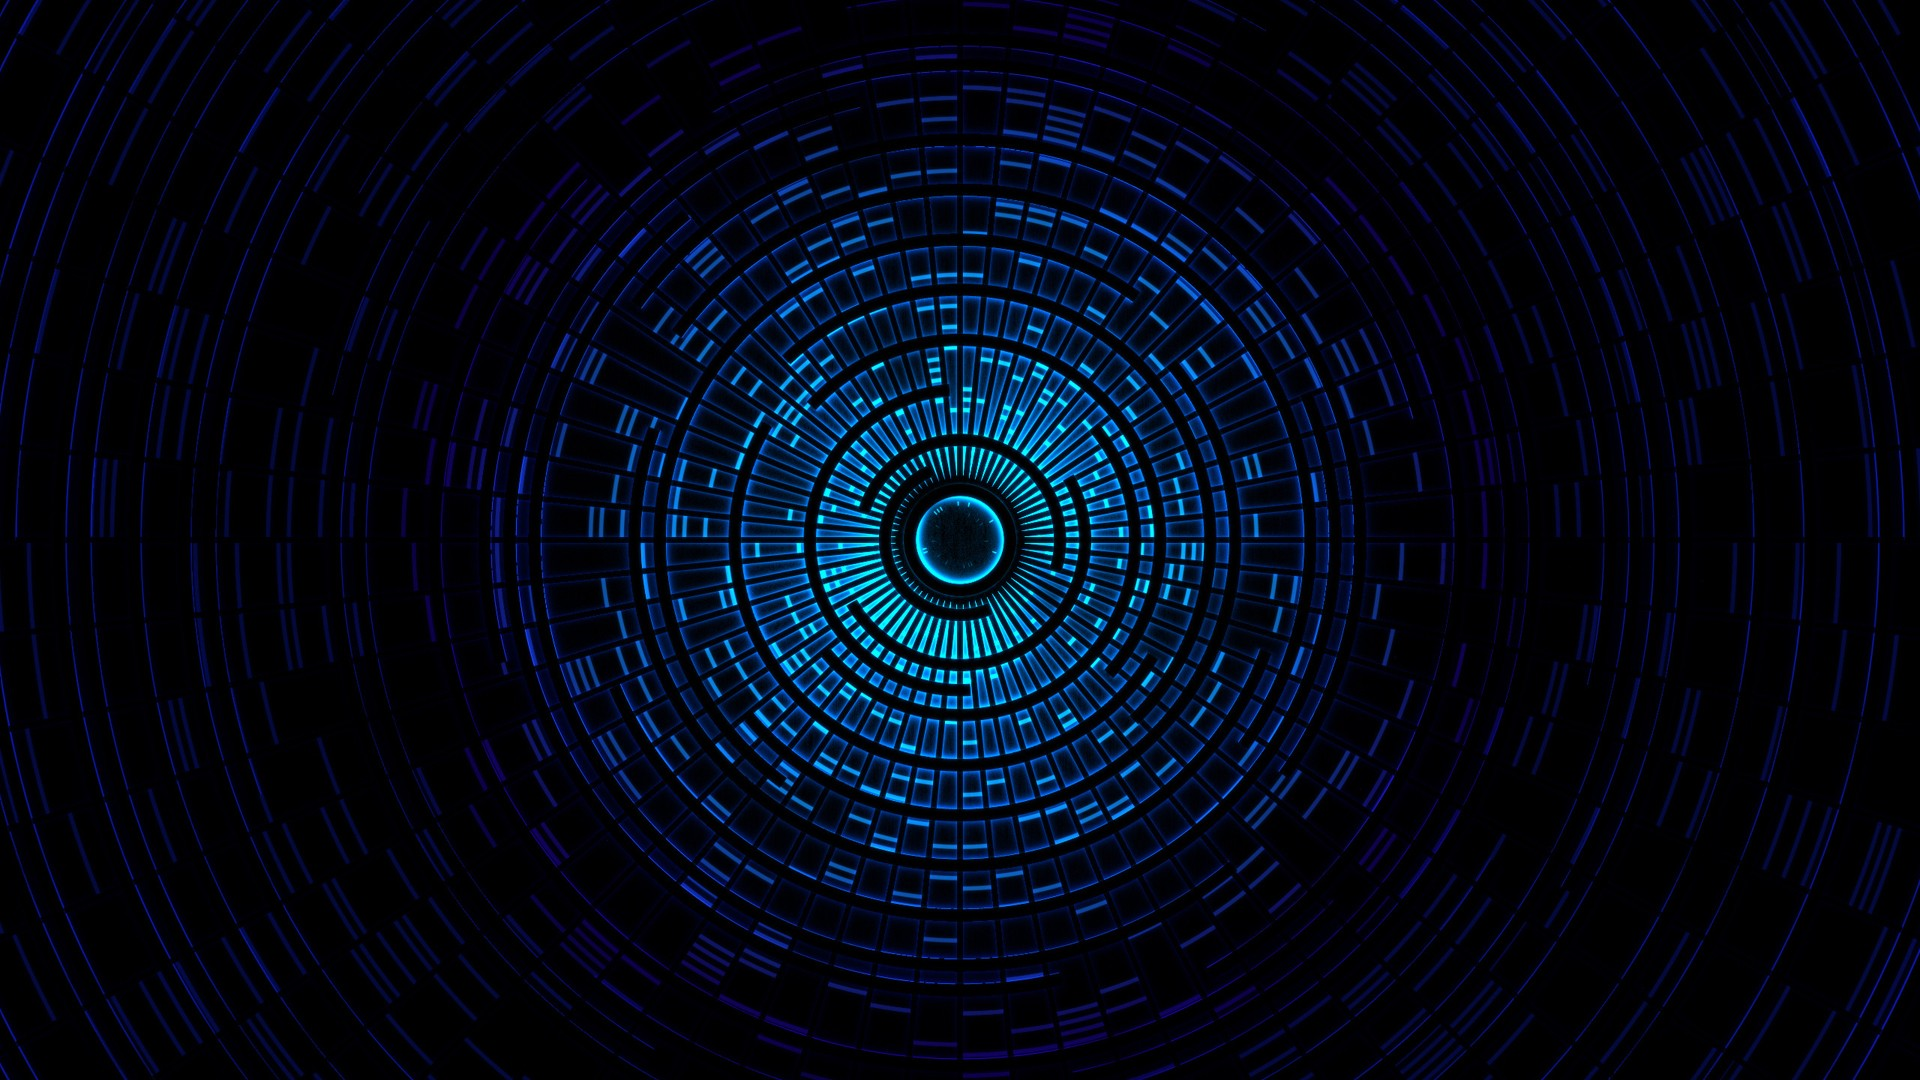 digital blasphemy blue tunnel vision nexus wallpaper